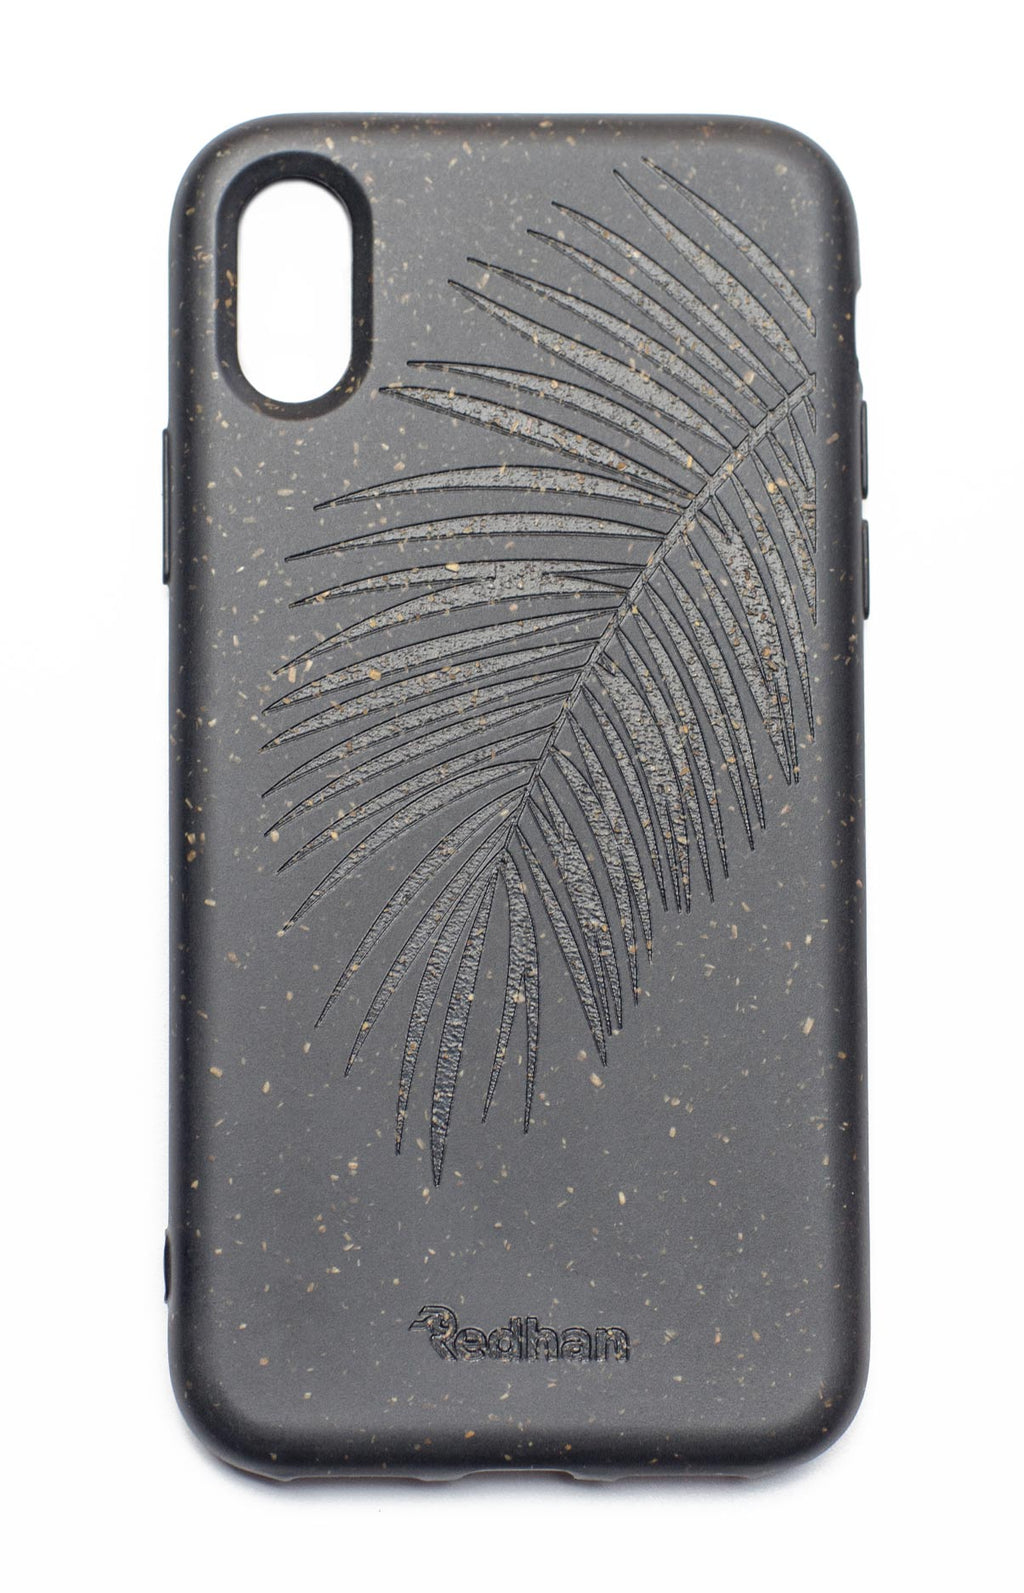 Palm Leaf in Charcoal Black - iPhone X / XS